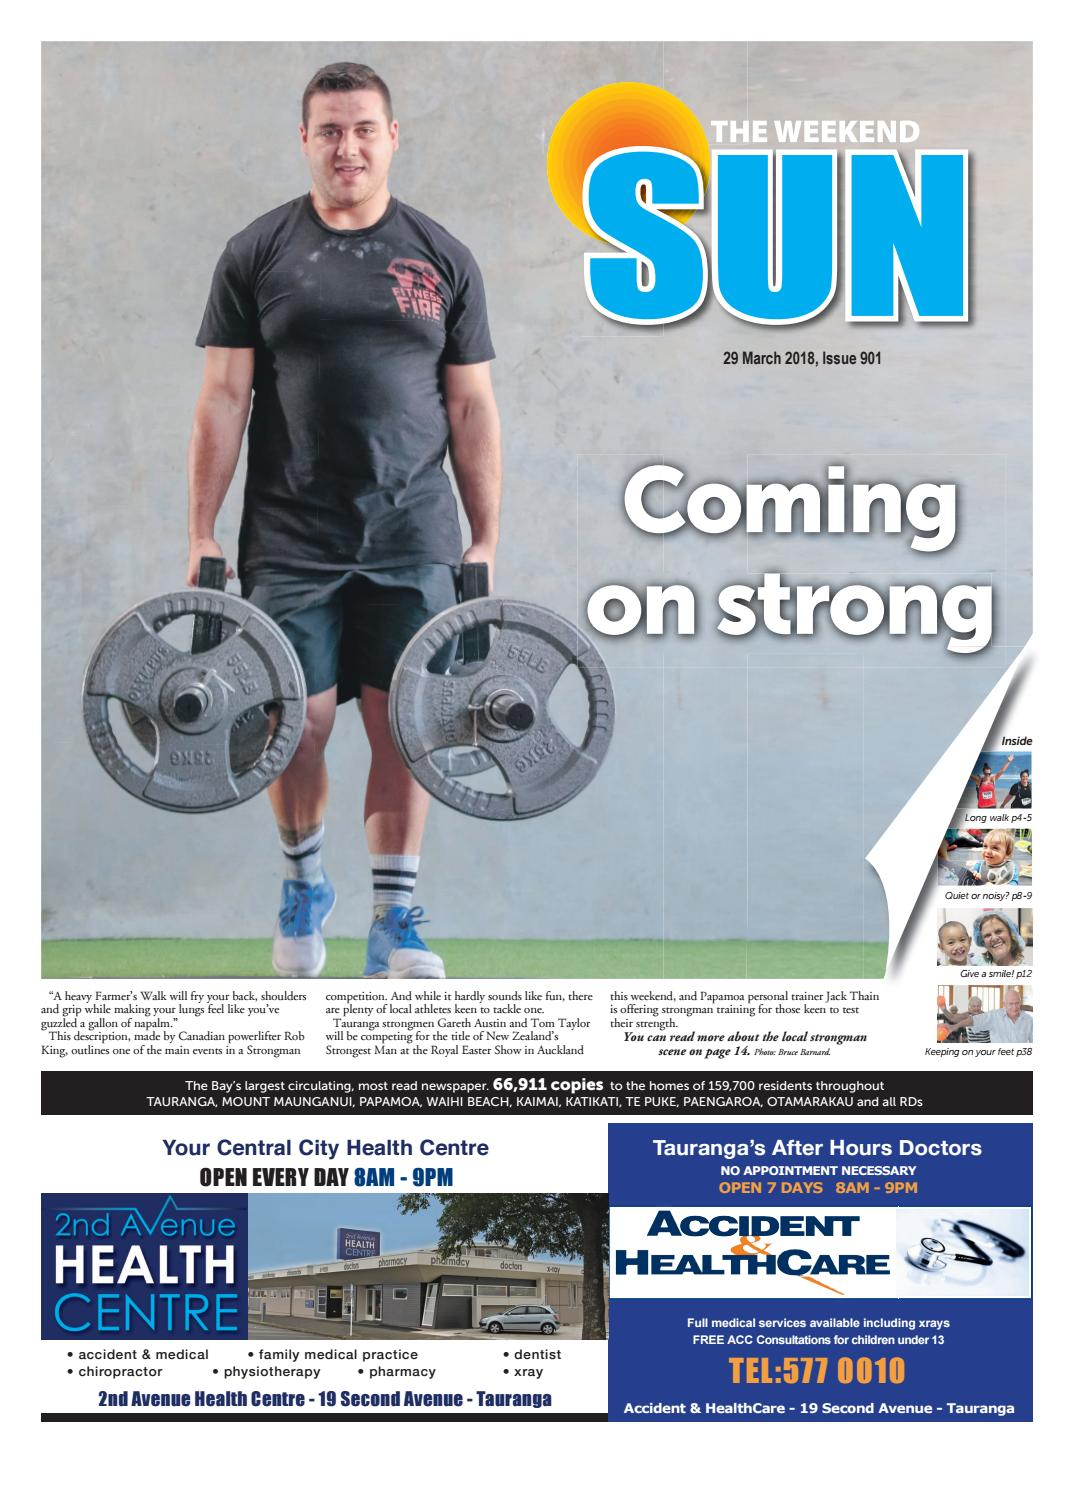 The Weekend Sun 29 March 2018 by SunLive - issuu